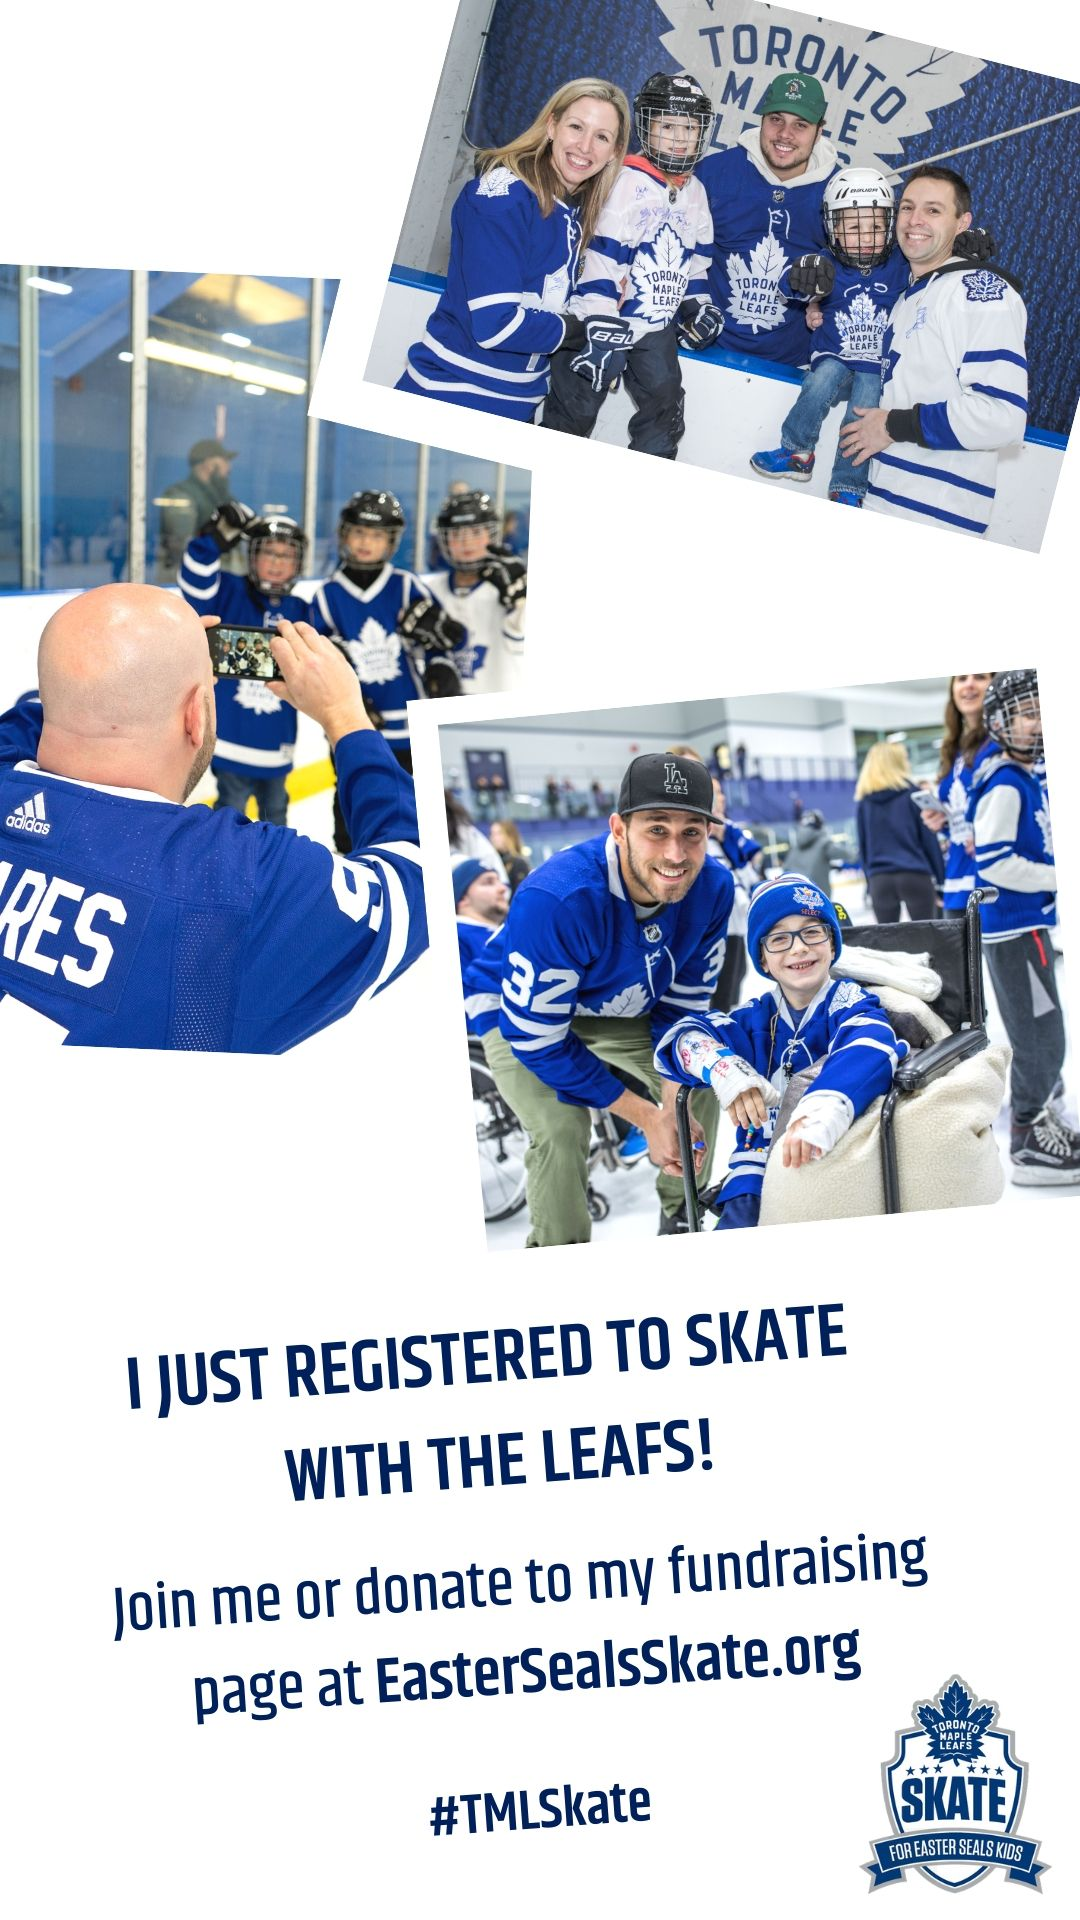 Toronto Maple Leafs Skate Instagram